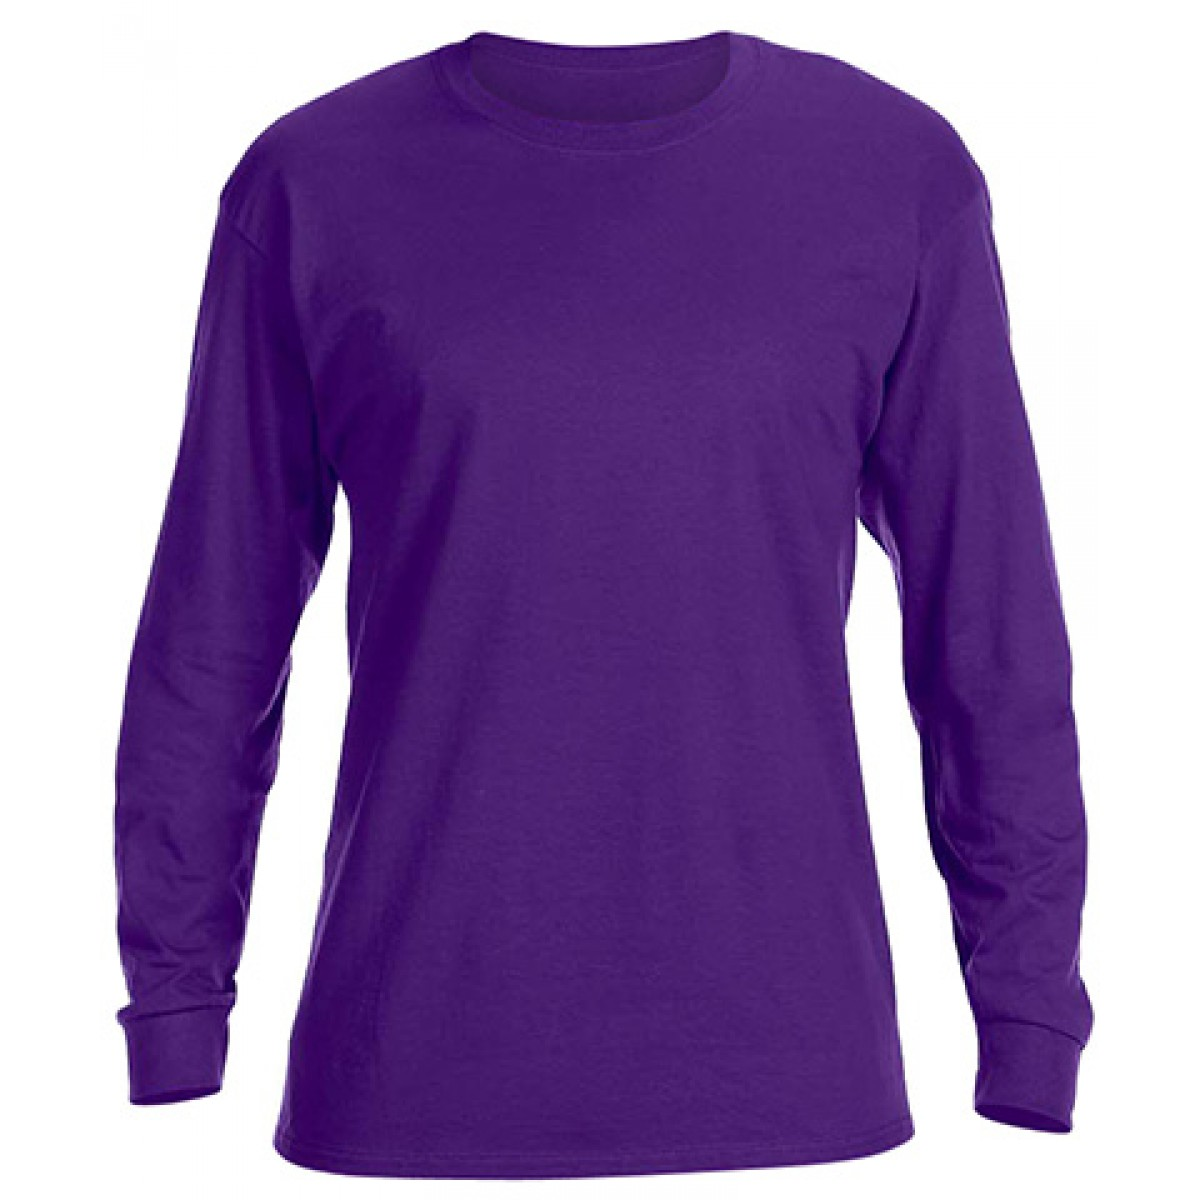 Basic Long Sleeve Crew Neck Cardinal Purple